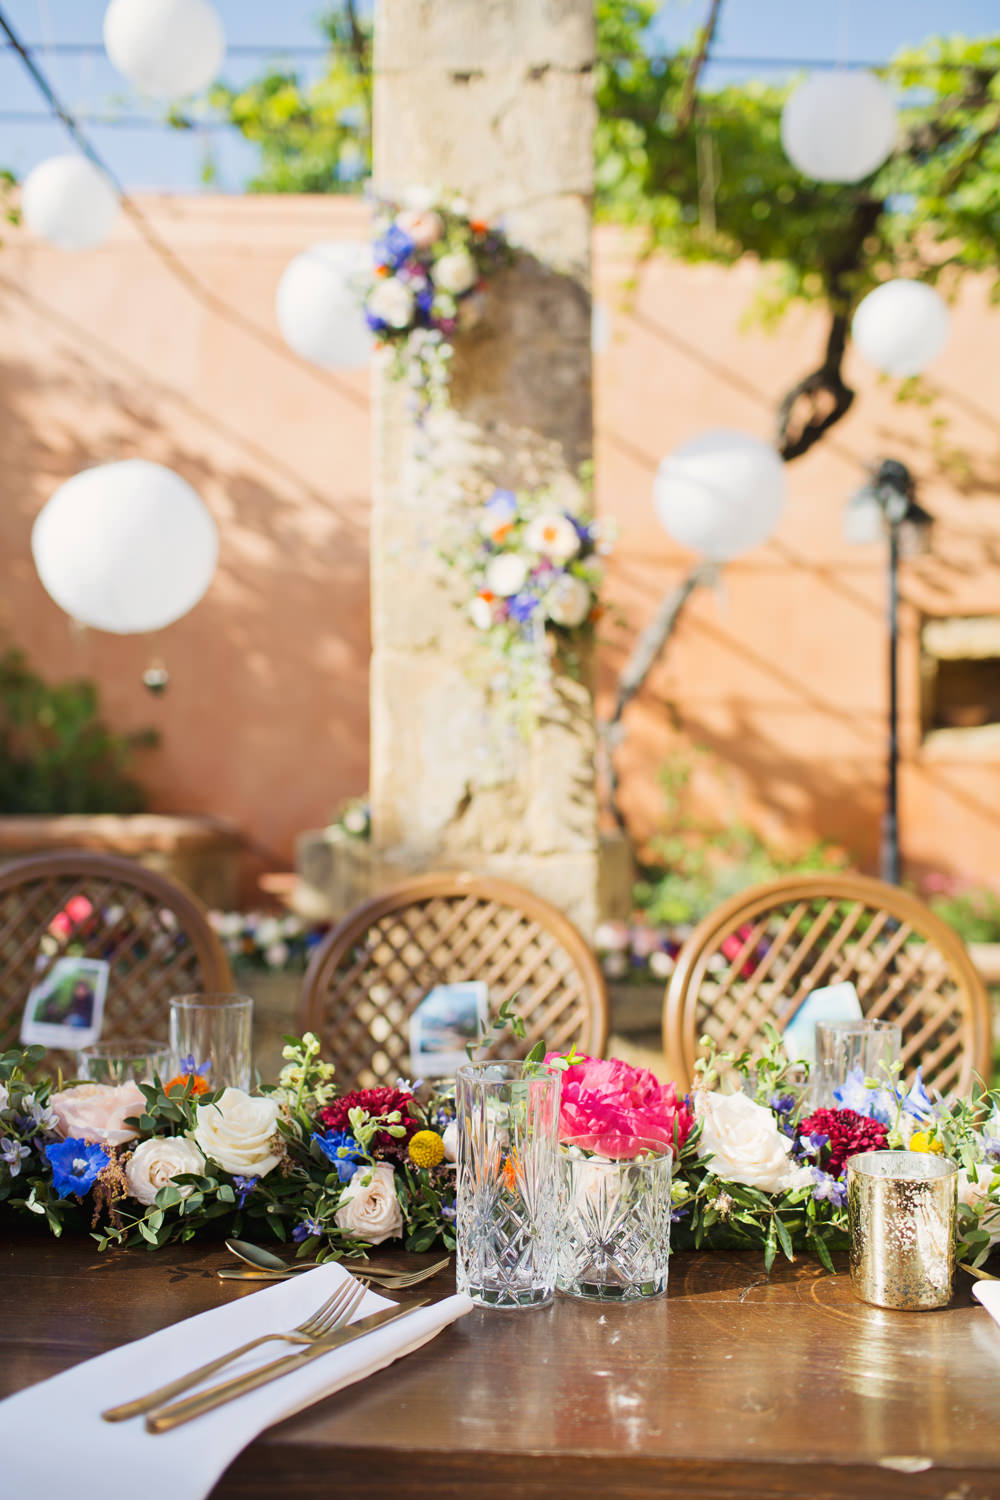 Table Decor Decorations Floral Flower Garland Swag Runner Kefalonia Wedding Cotton Candy Weddings